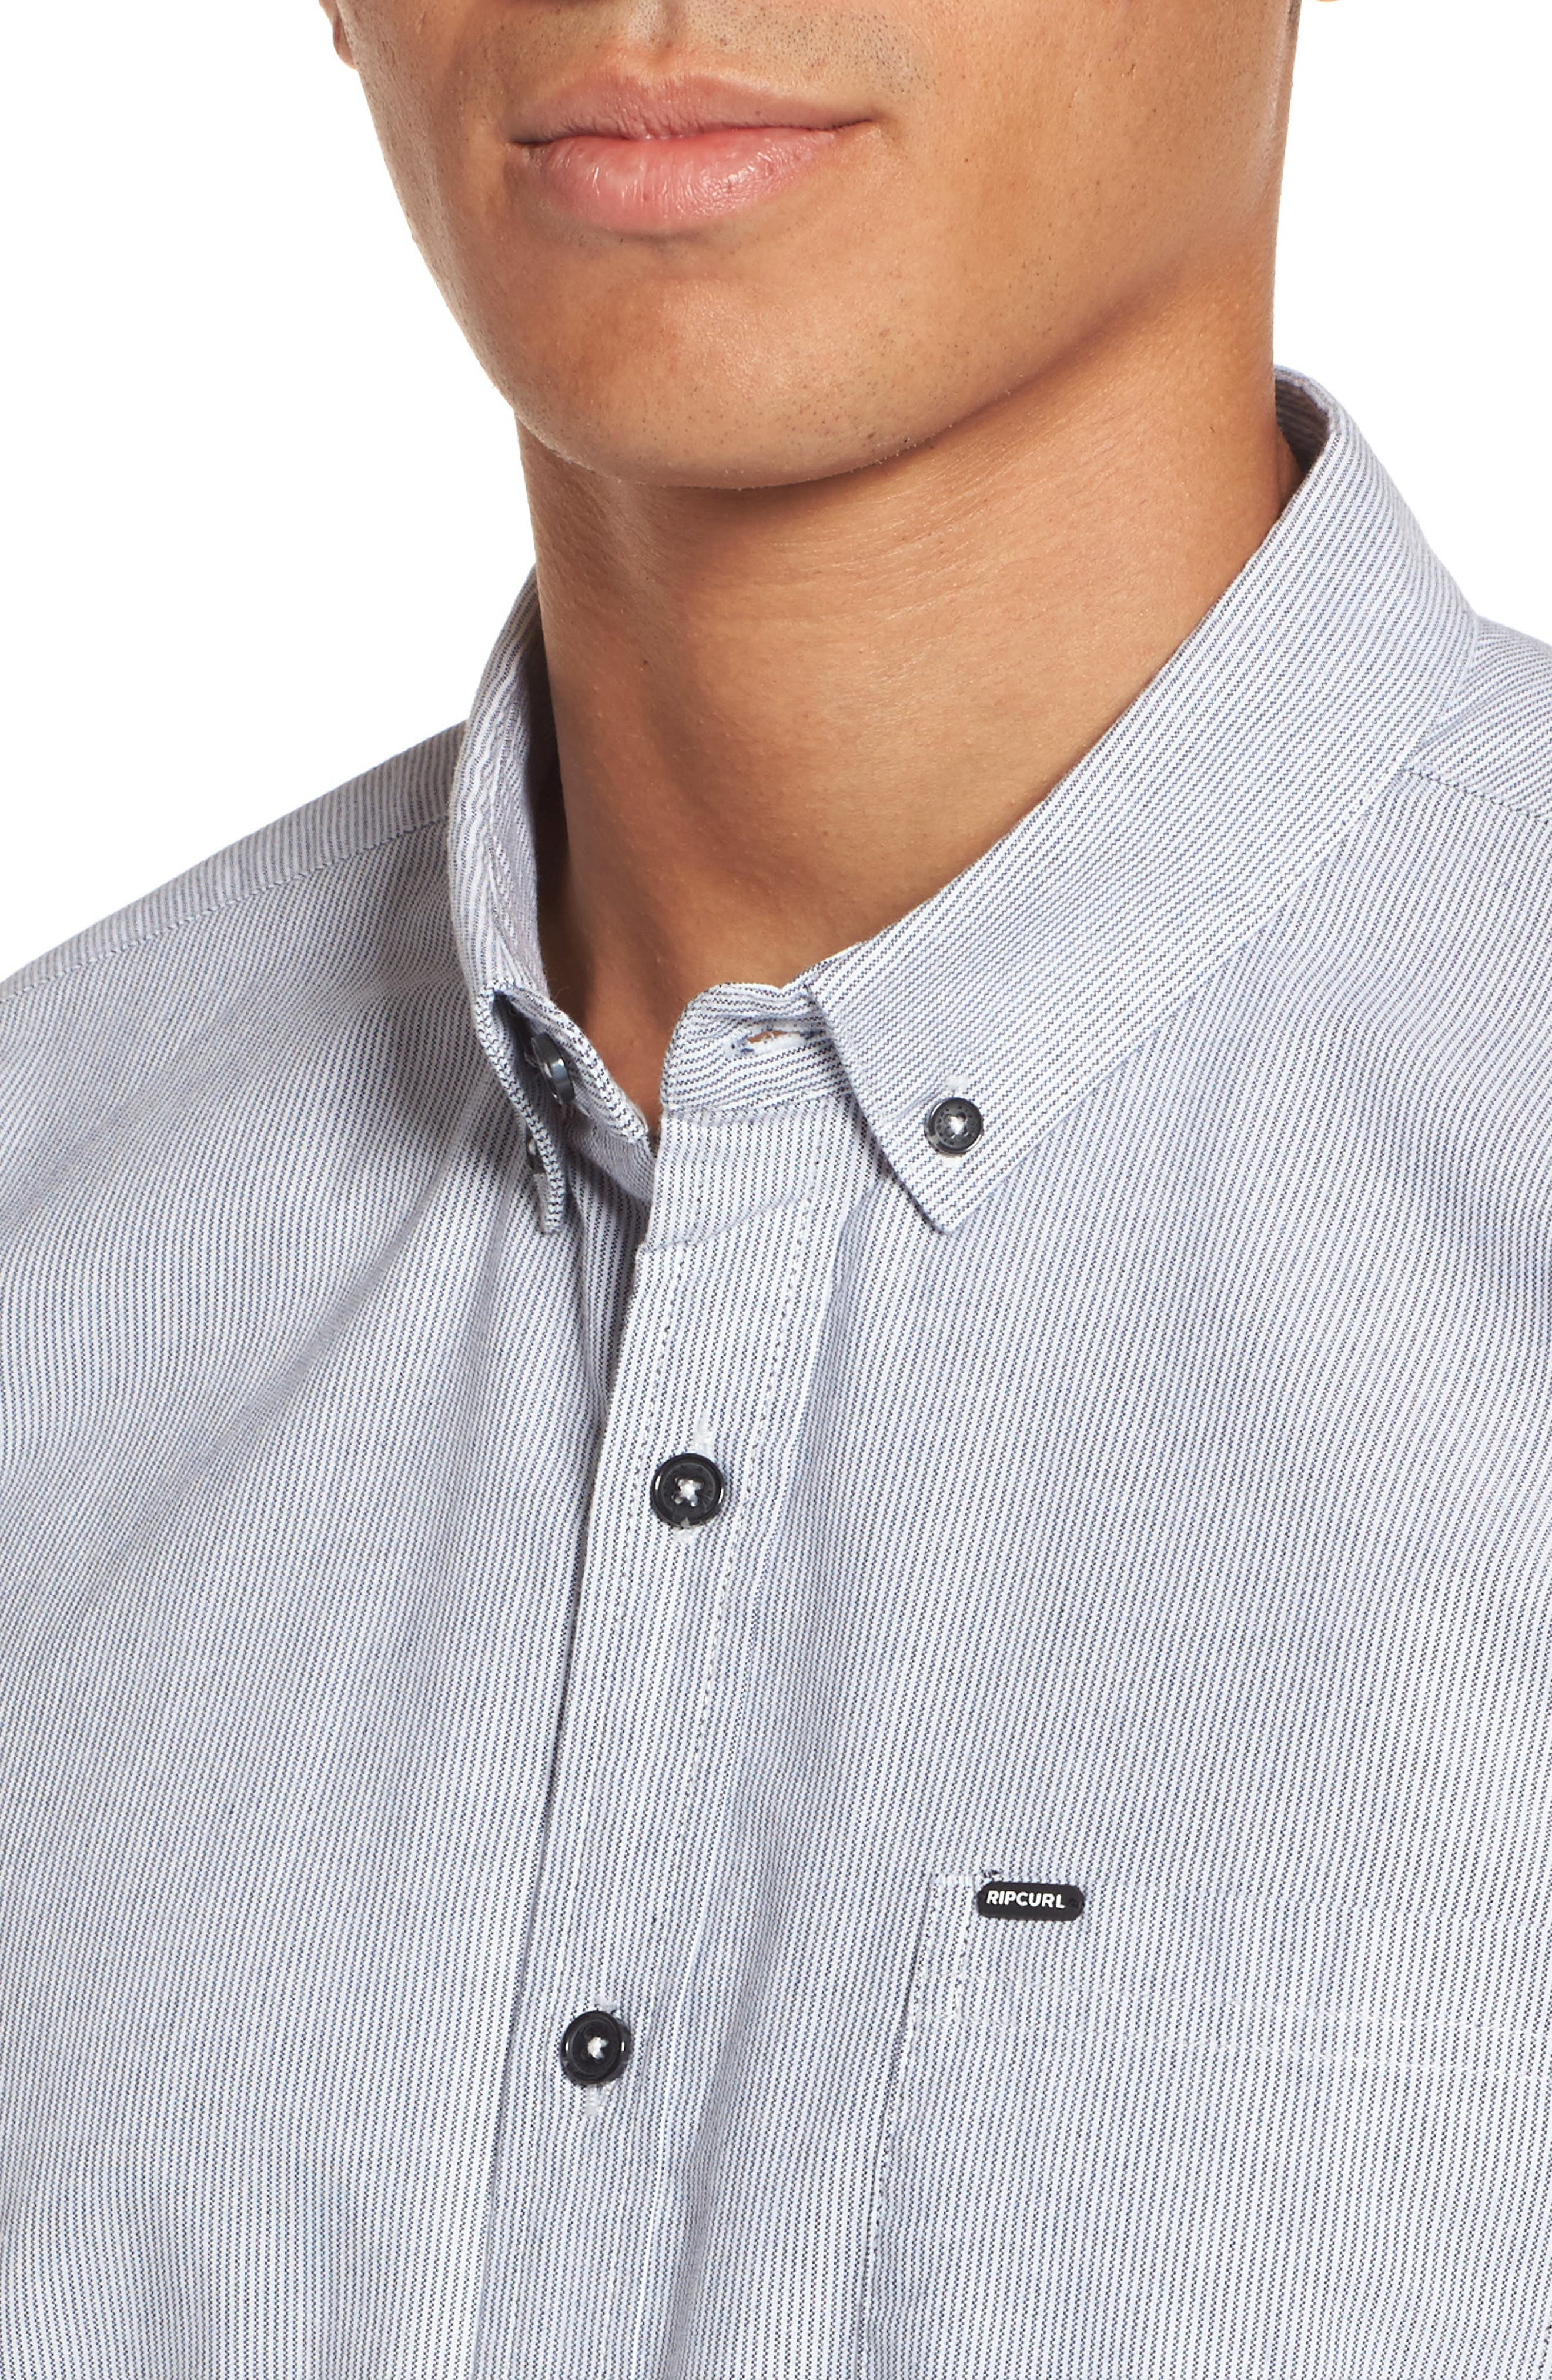 Ourtime Woven Shirt,                             Alternate thumbnail 4, color,                             116